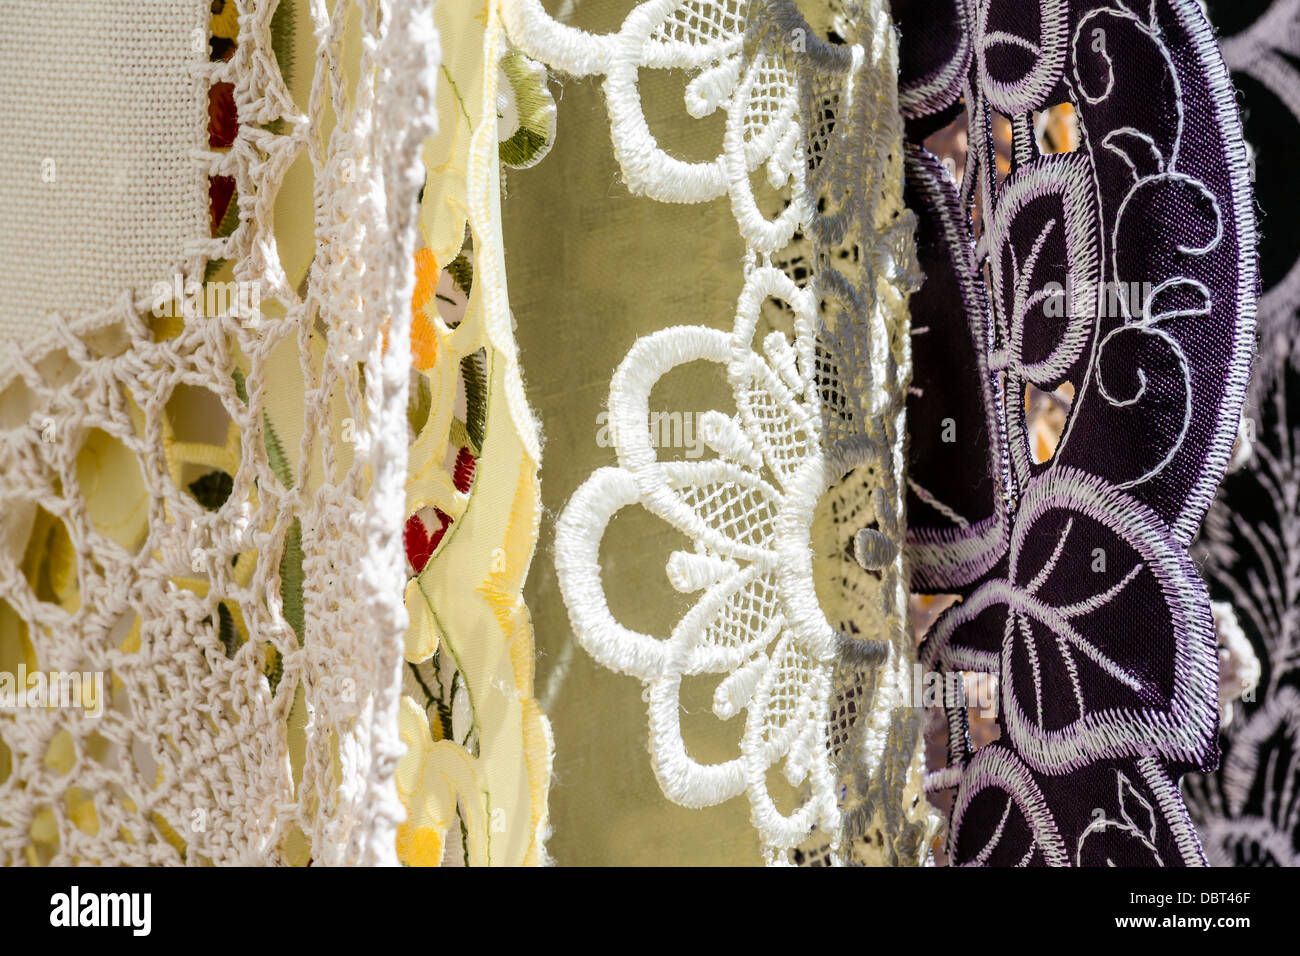 Details of hand-embroidered tablecloth - Stock Image